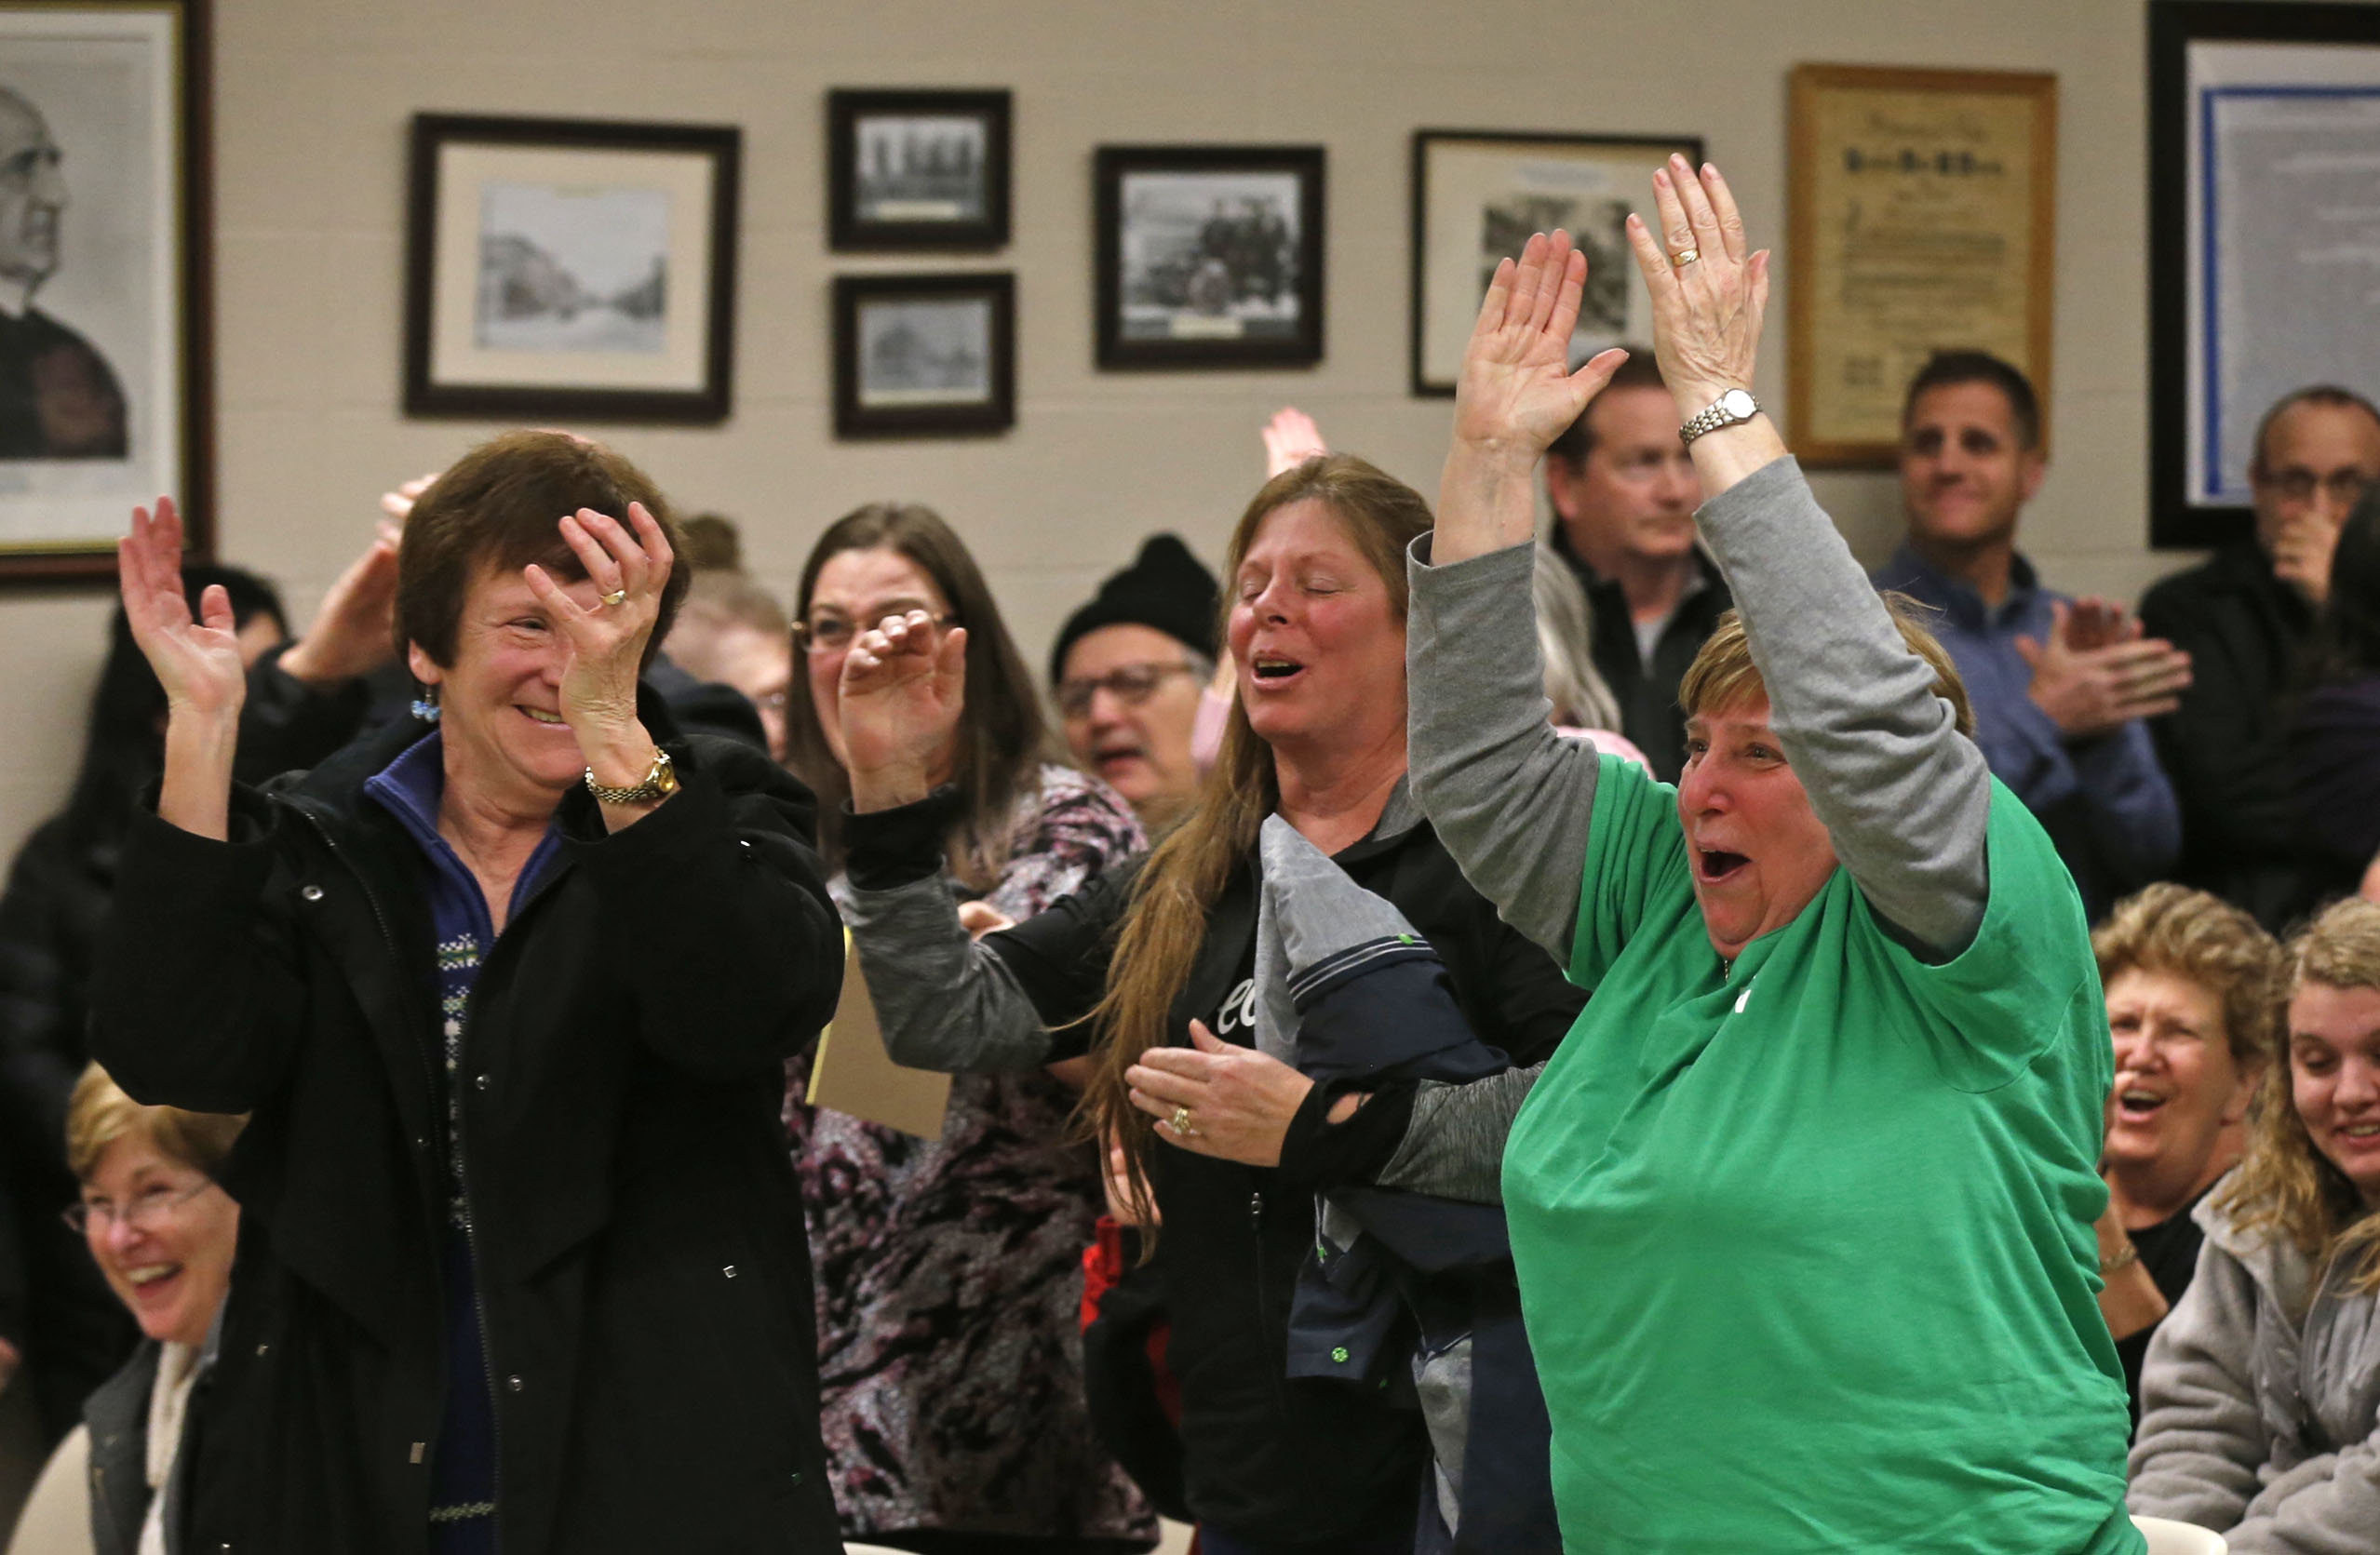 Depew residents at Village Hall Tuesday night celebrate the news that a dissolution referendum was resoundingly defeated.  (Robert Kirkham/Buffalo News)